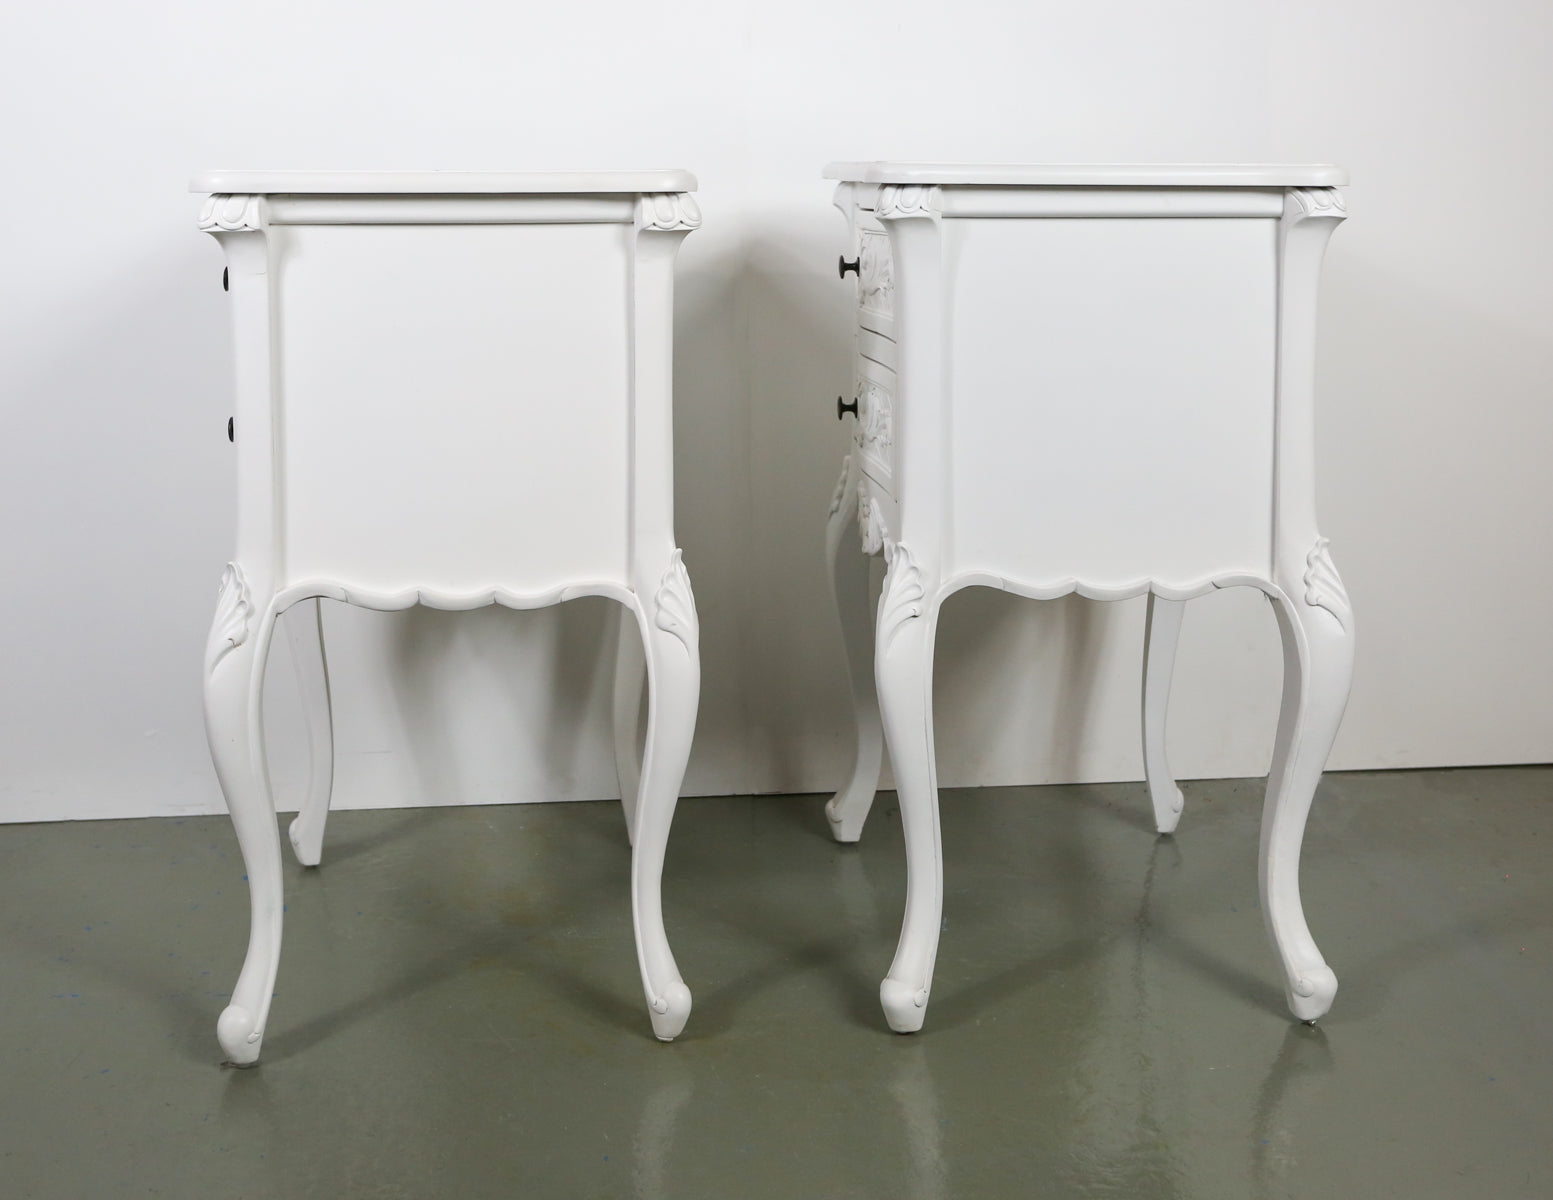 Urban Living French Country Nightstands (2 units)